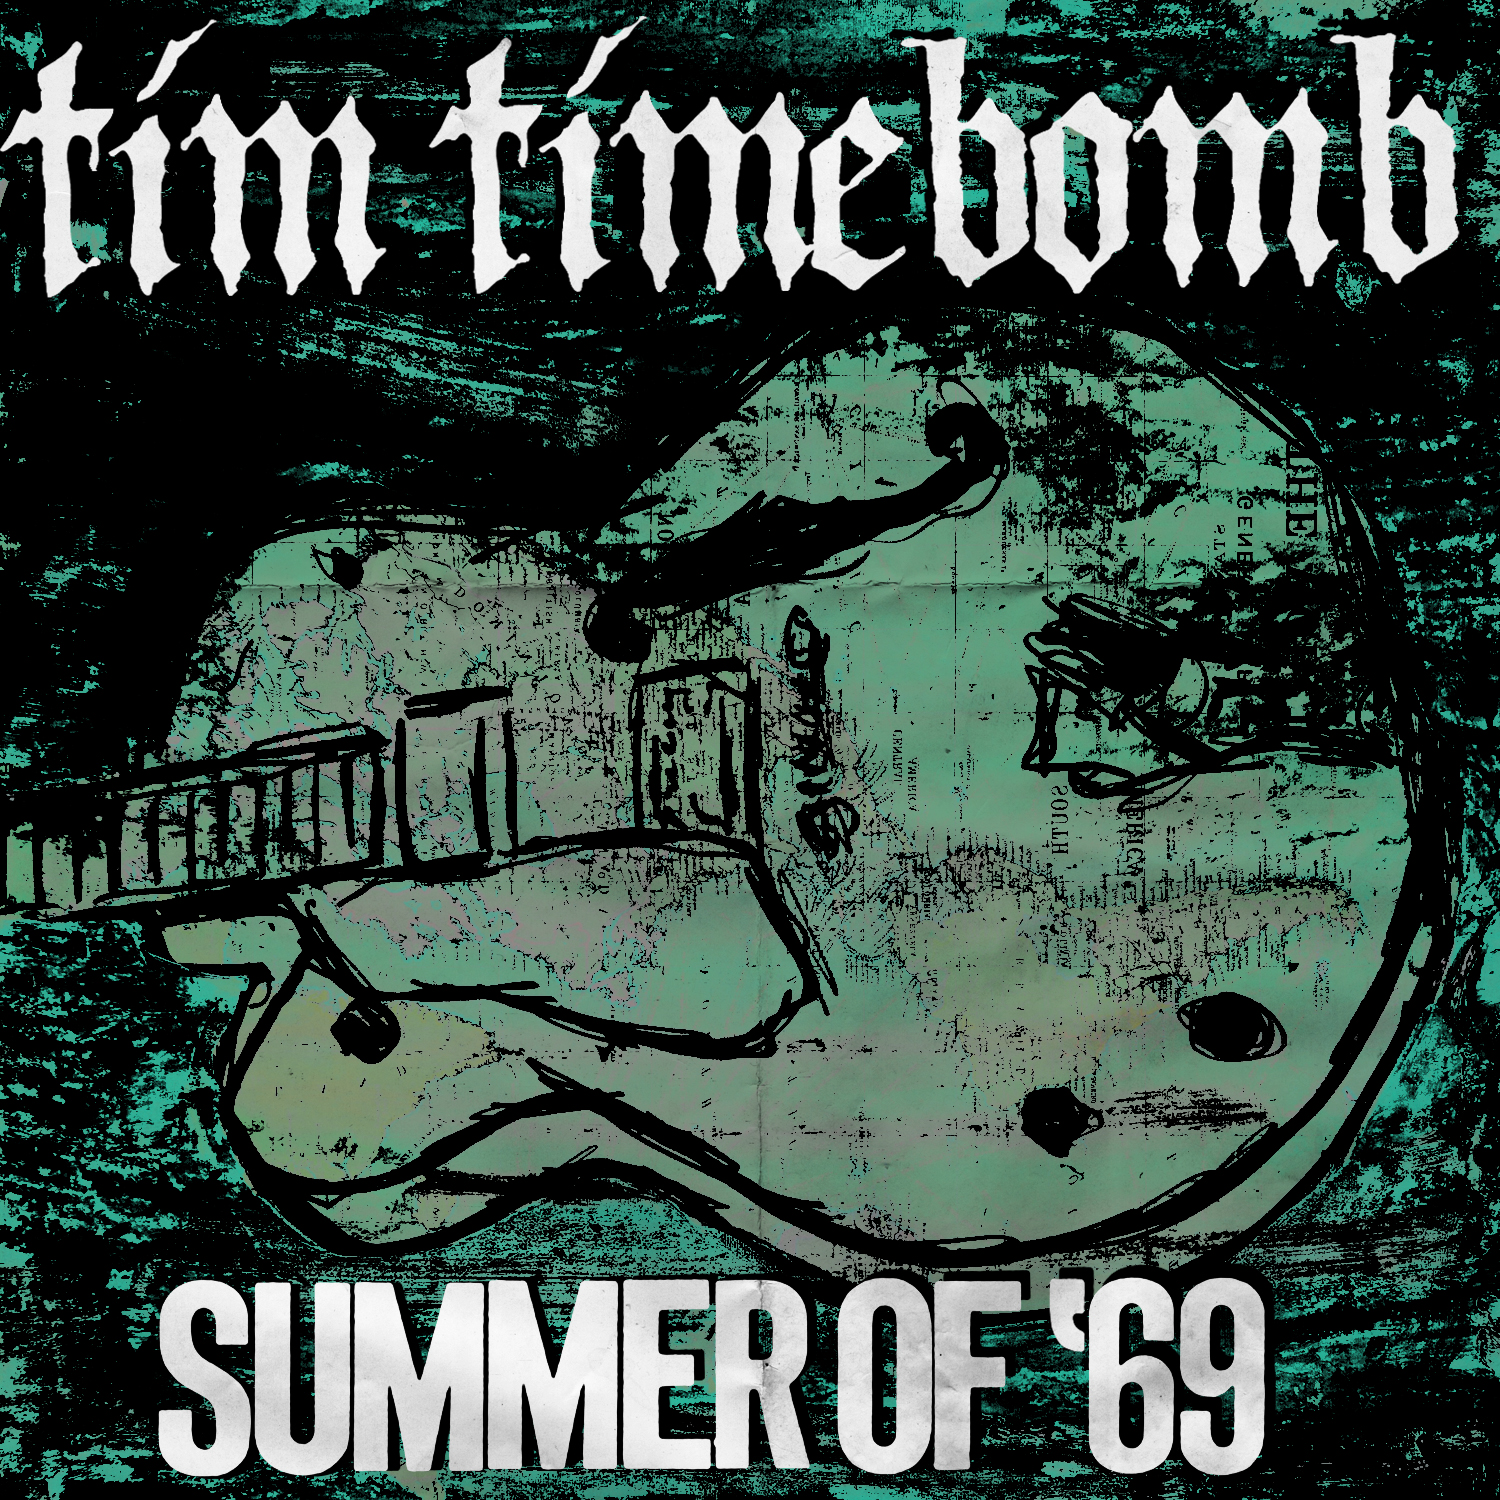 Summer of 69, by request